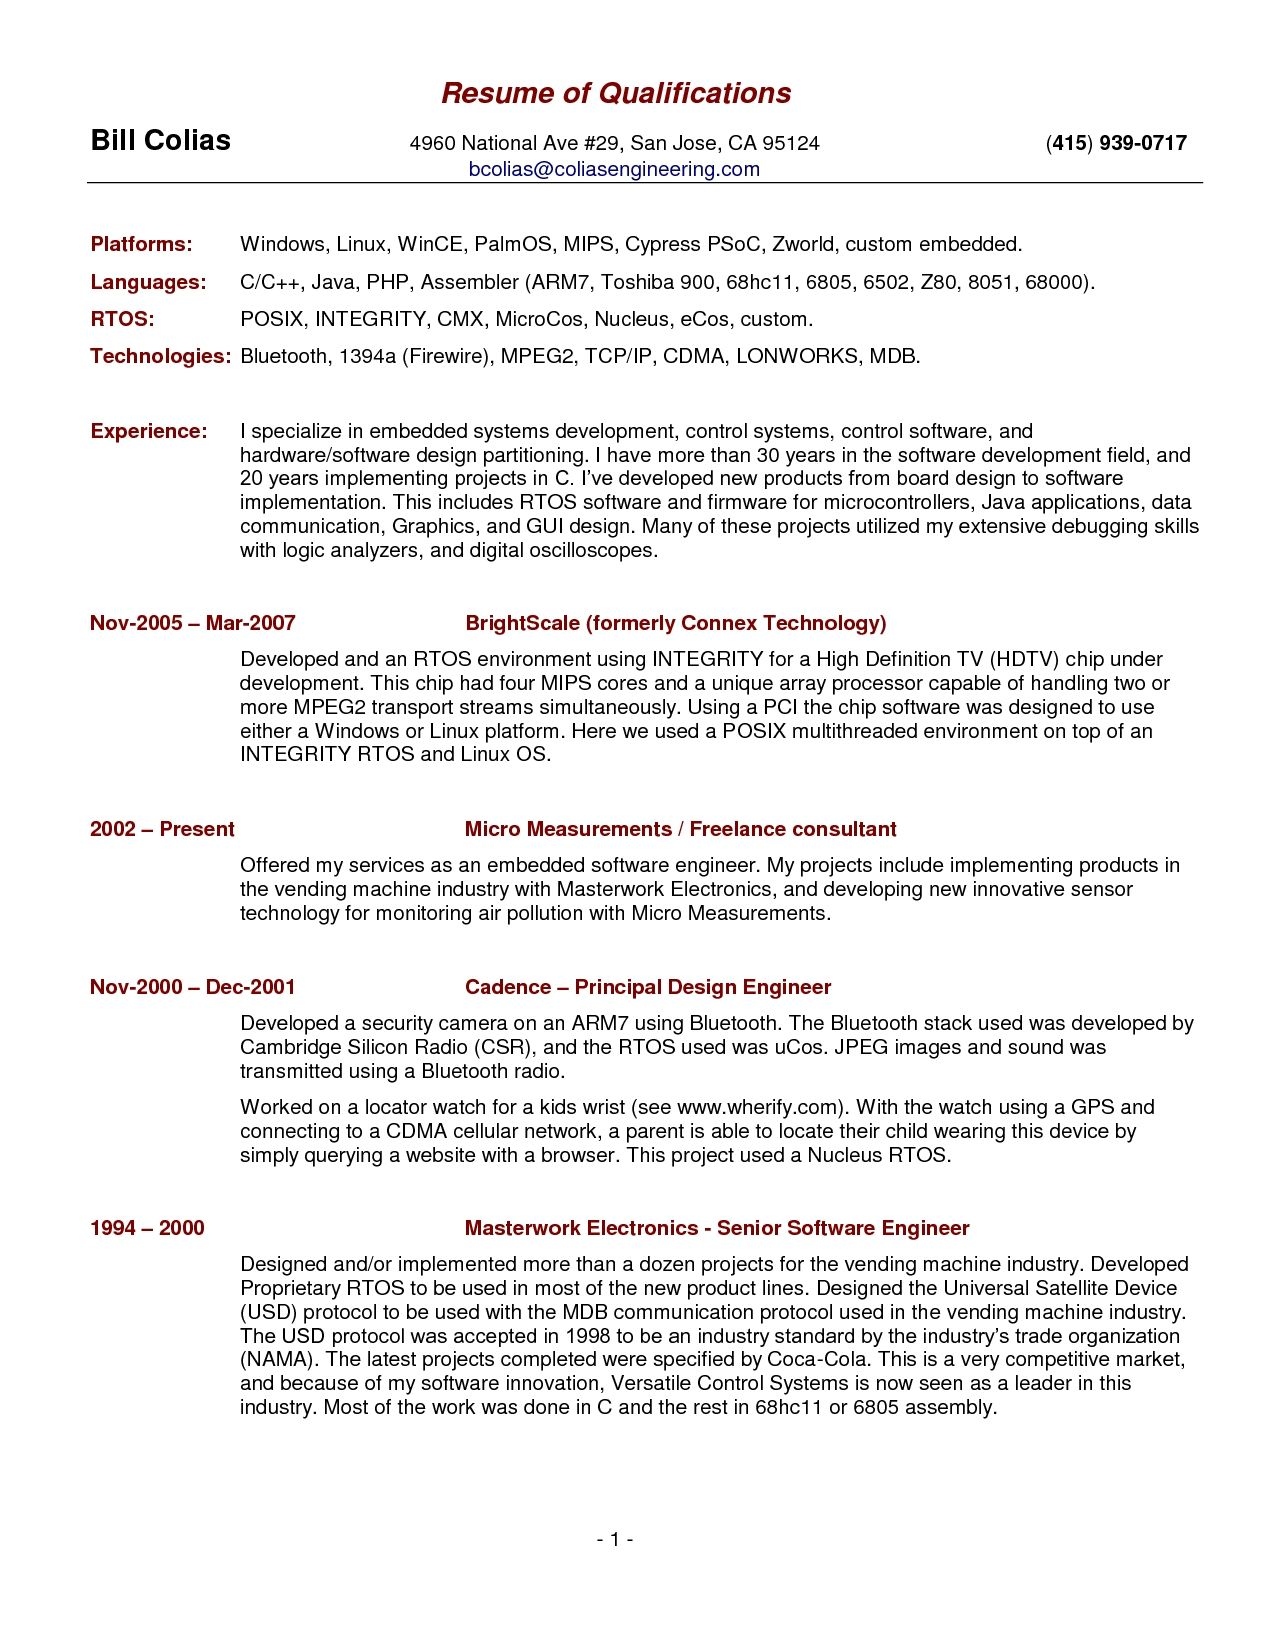 Resume Examples Skills Awesome Qualifications For A Resume Examples 7F8Ea3A2A New Resume Skills Design Ideas